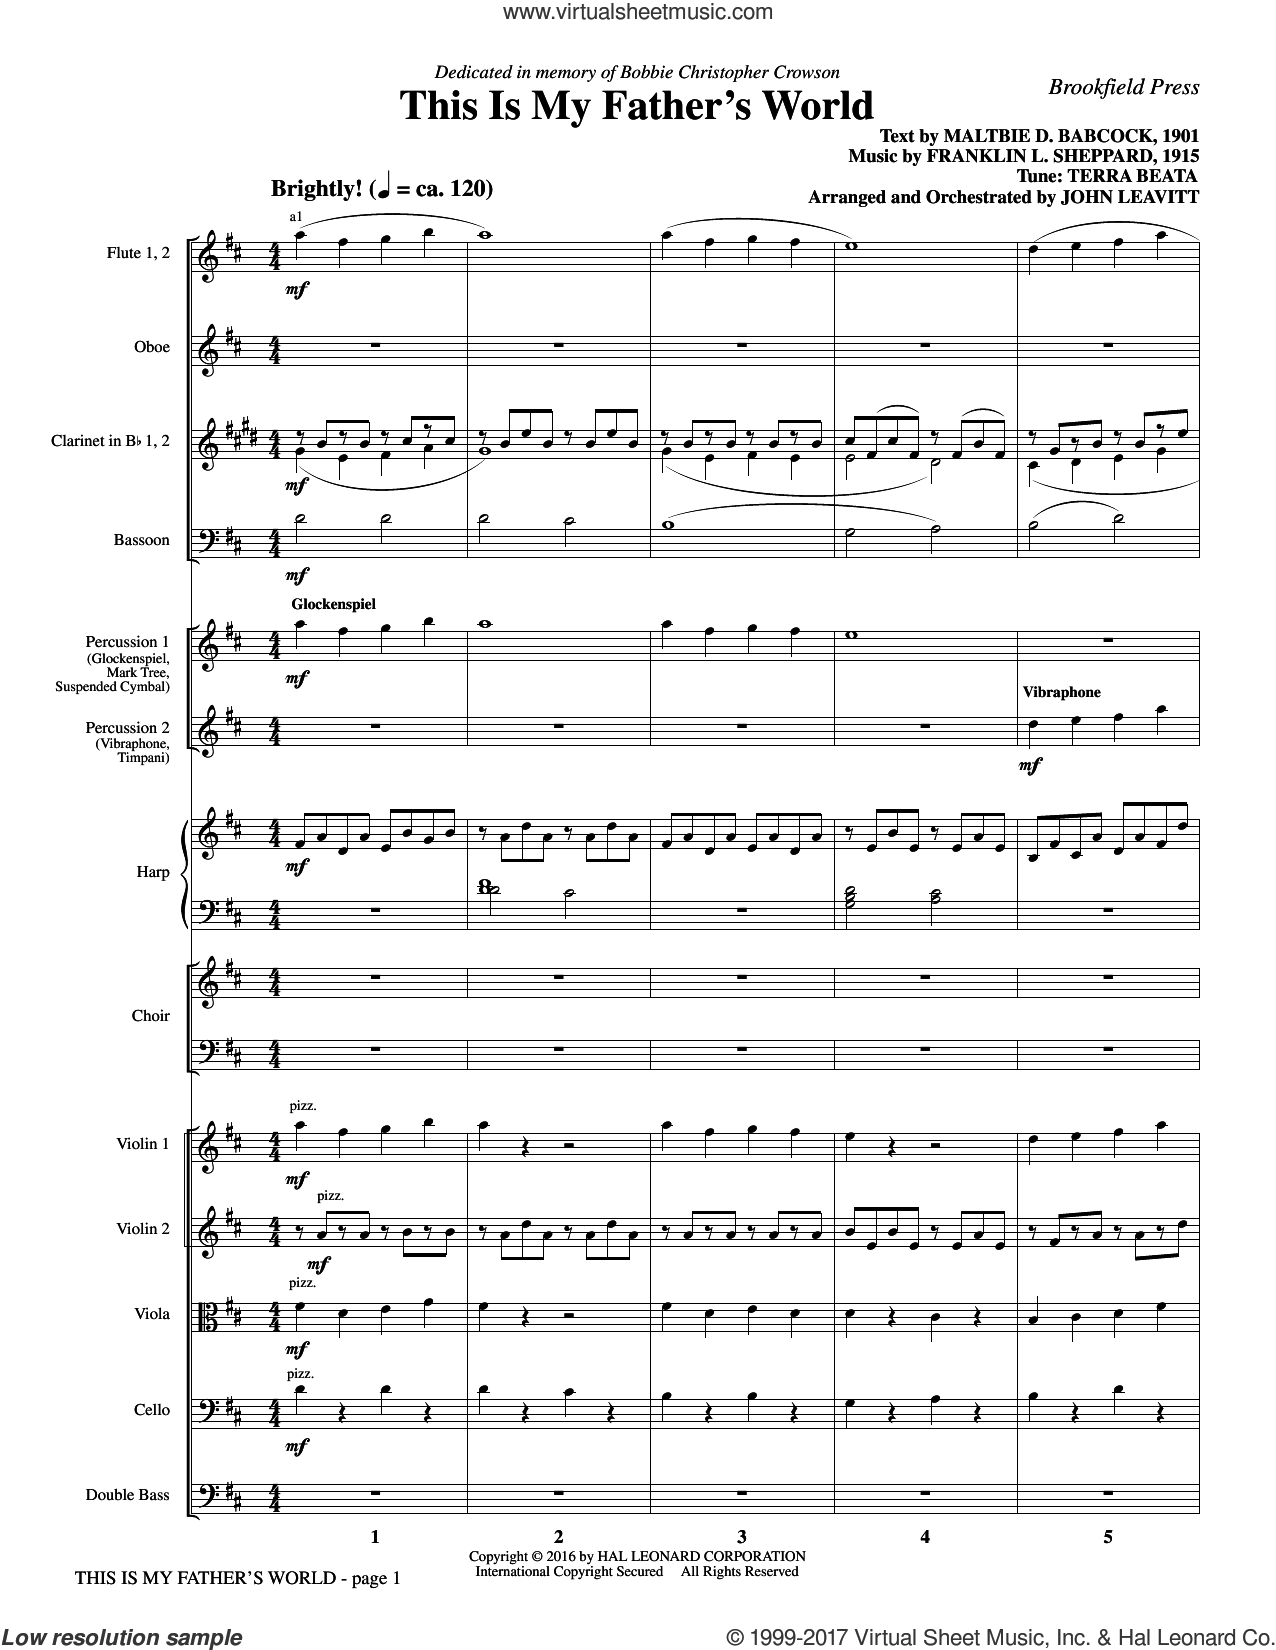 This Is My Father's World (COMPLETE) sheet music for orchestra/band by John Leavitt, Franklin L. Sheppard and Maltbie D. Babcock, intermediate skill level